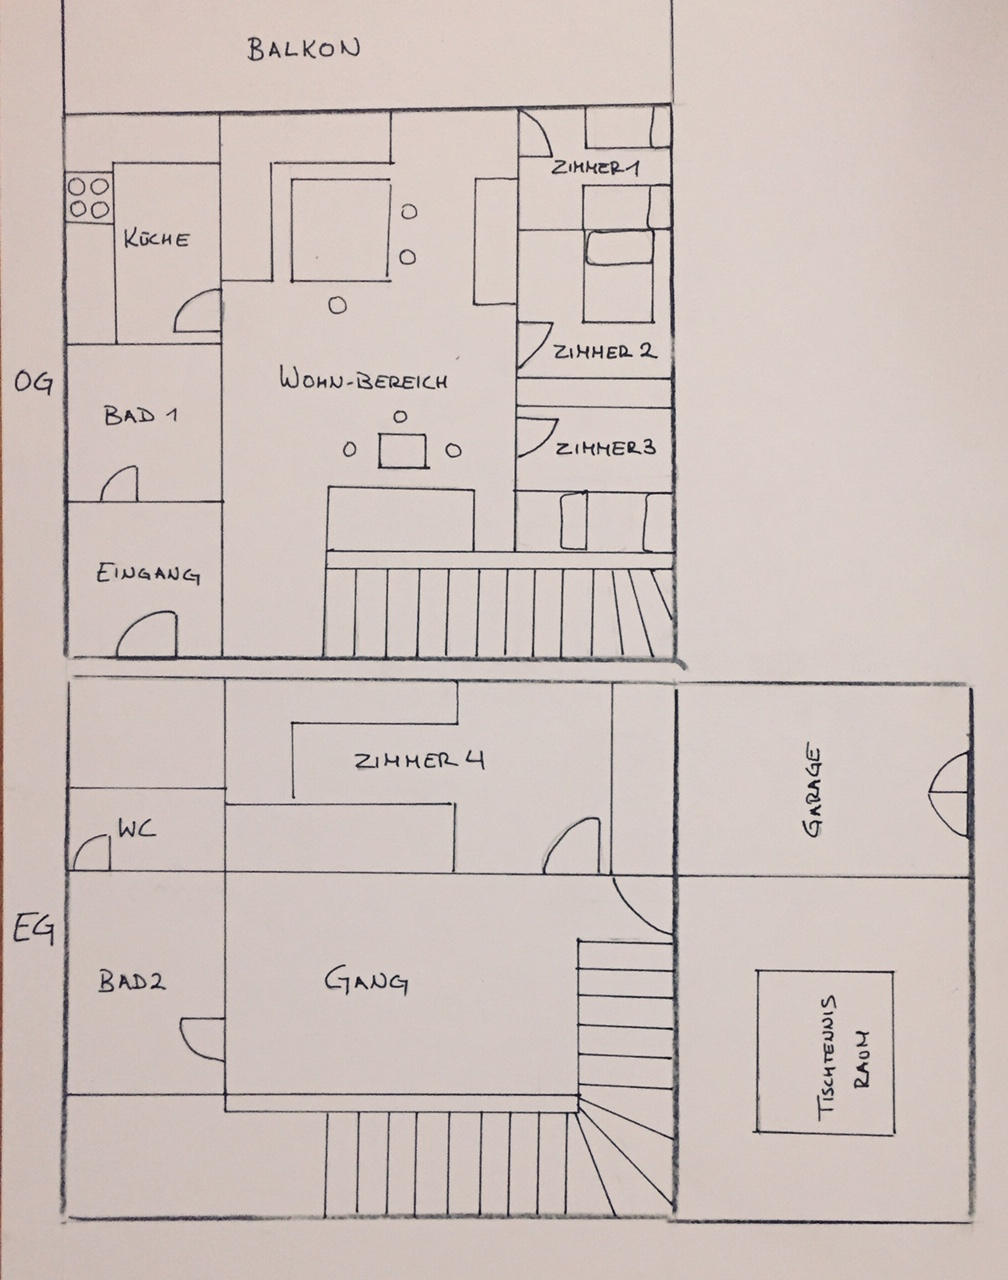 Plan of the house.